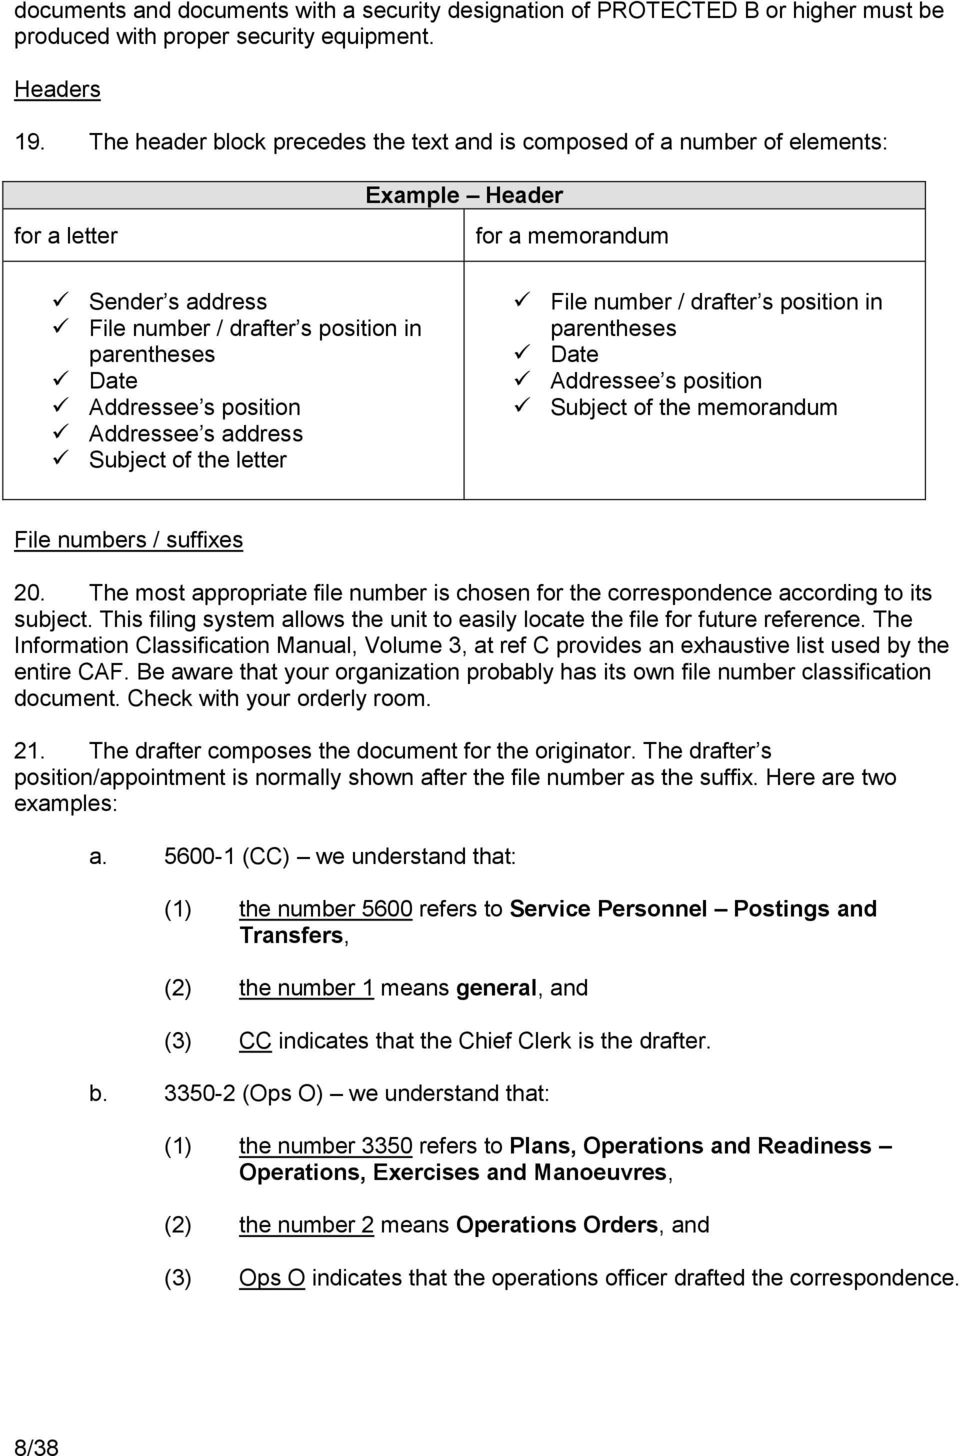 Staff Work Guide. Canadian Armed Forces Junior Officer Development ...